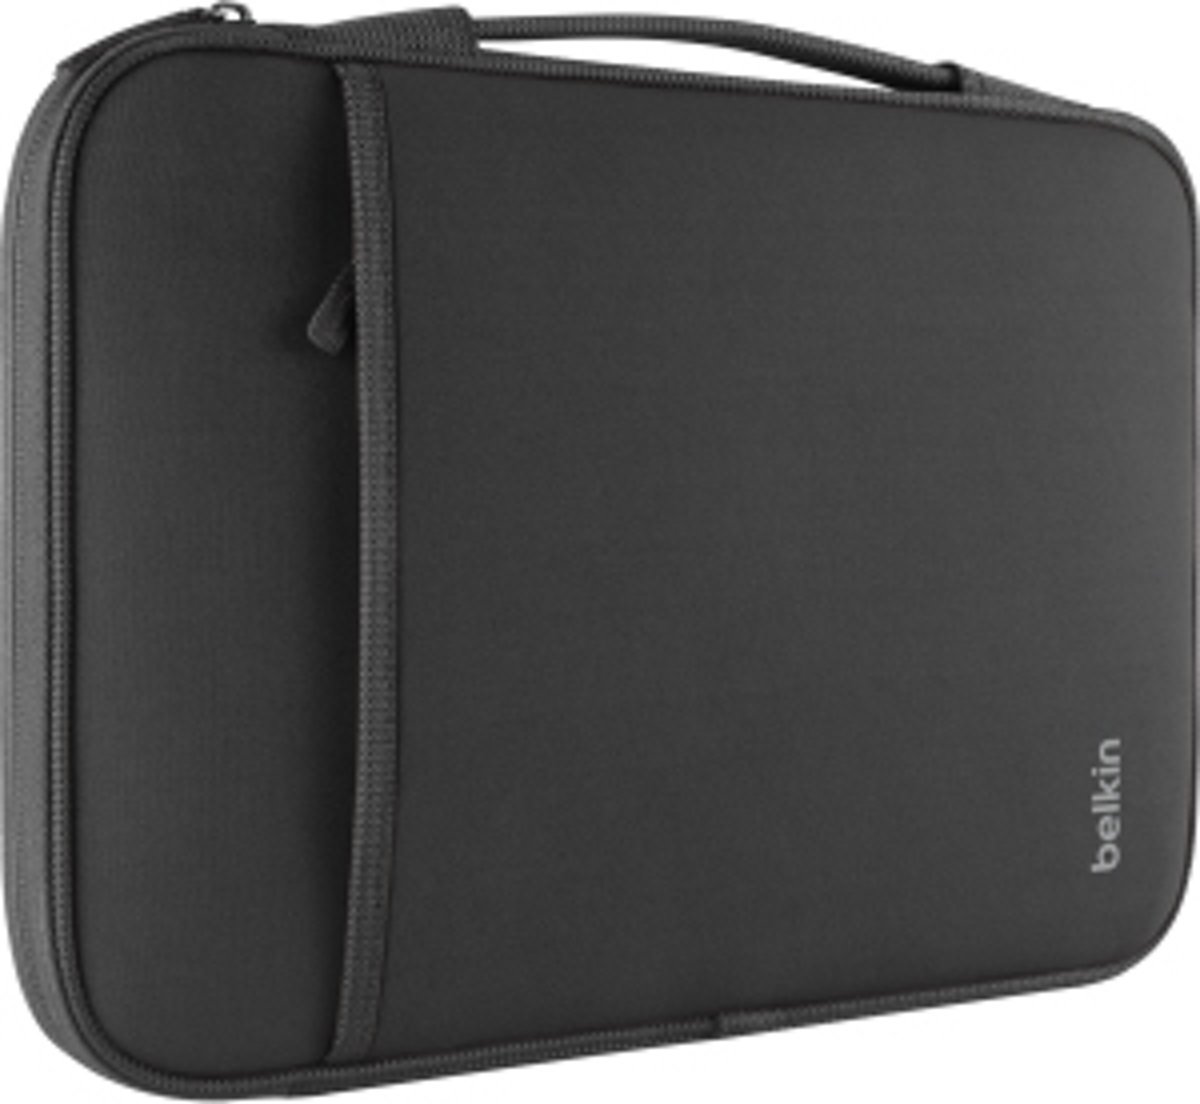 Belkin Laptop Sleeve - 14 inch